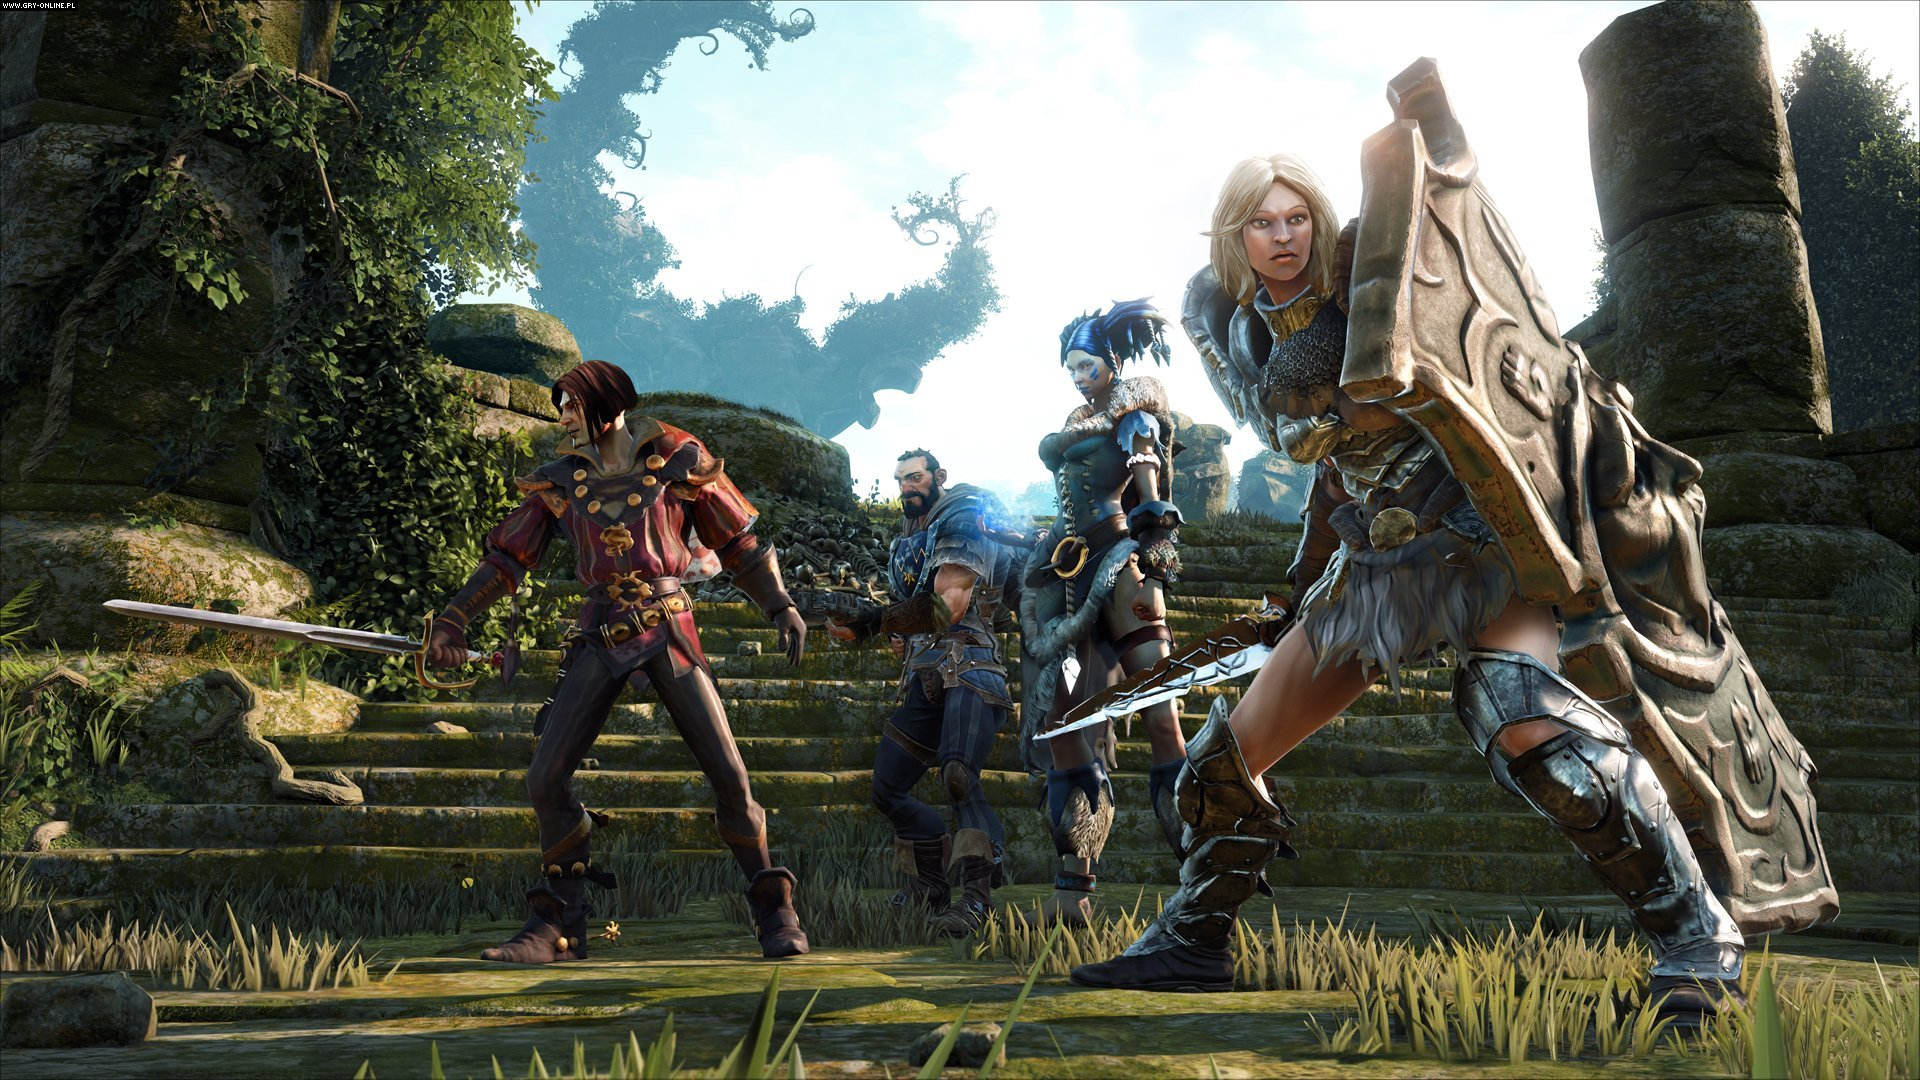 Fable Legends XONE Gry Screen 61/63, LionHead Studios, Microsoft Studios